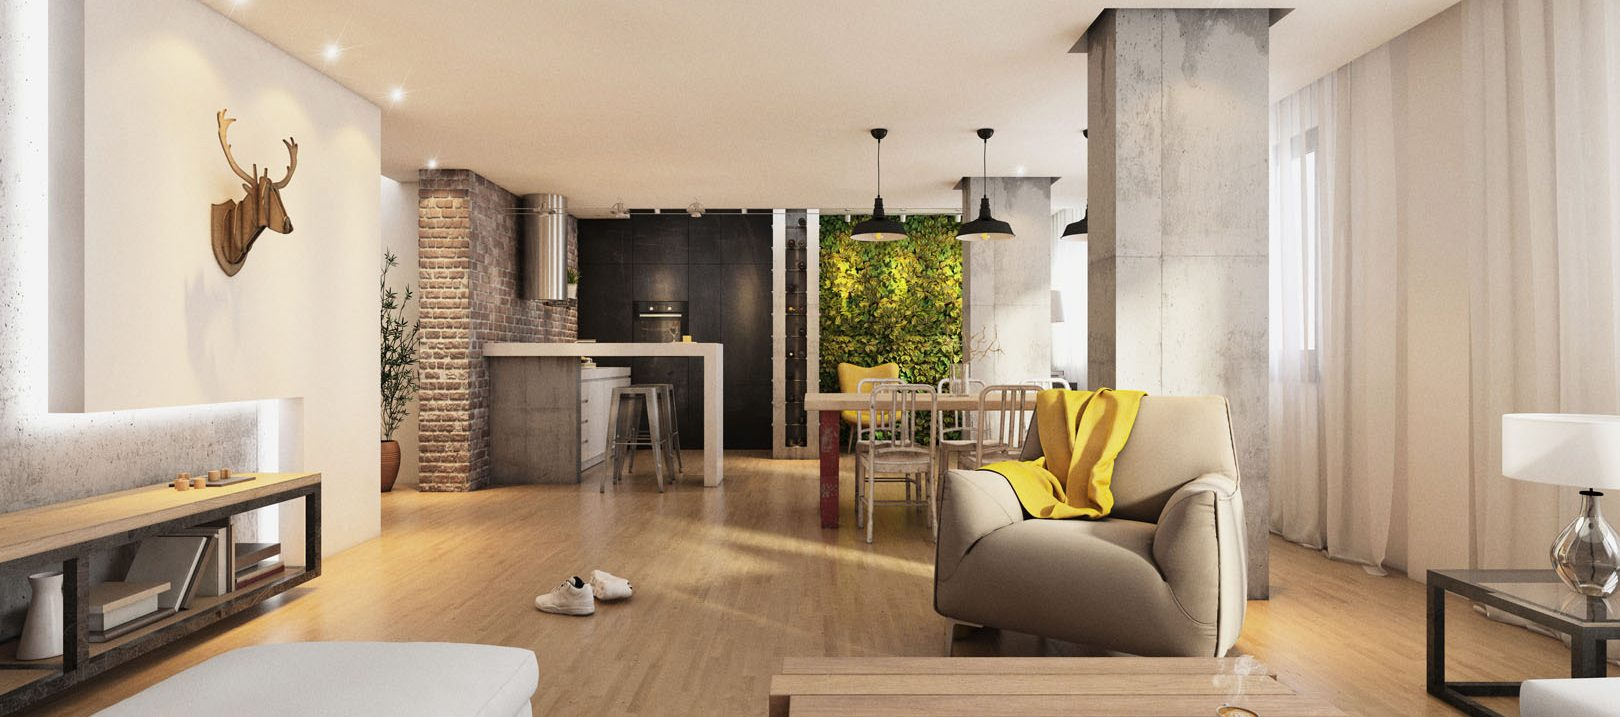 Modern hipster living room interior with wooden floor, armchair, open space with light, decoration, brick wall. Kitchen in the back, and green wall.